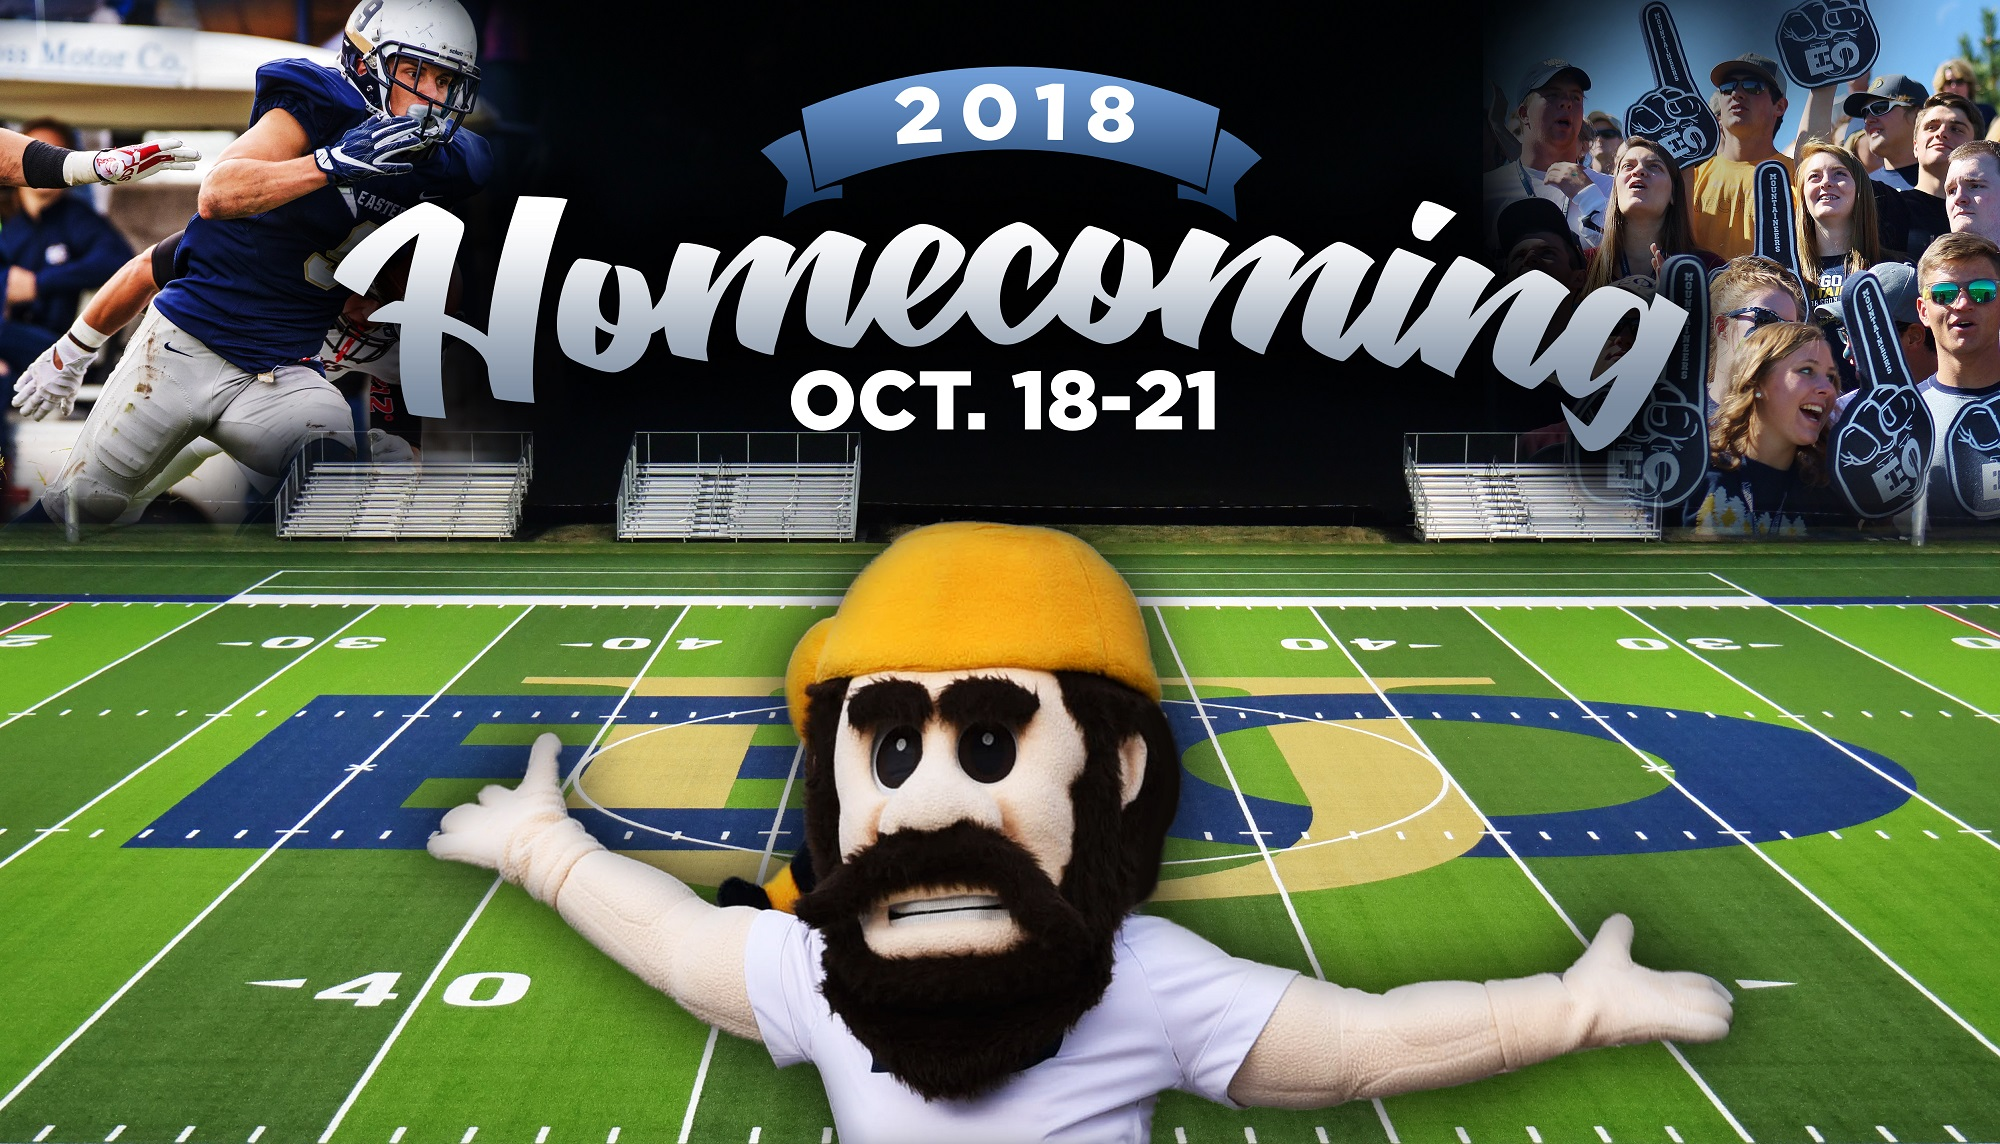 EOU Homecoming 2018